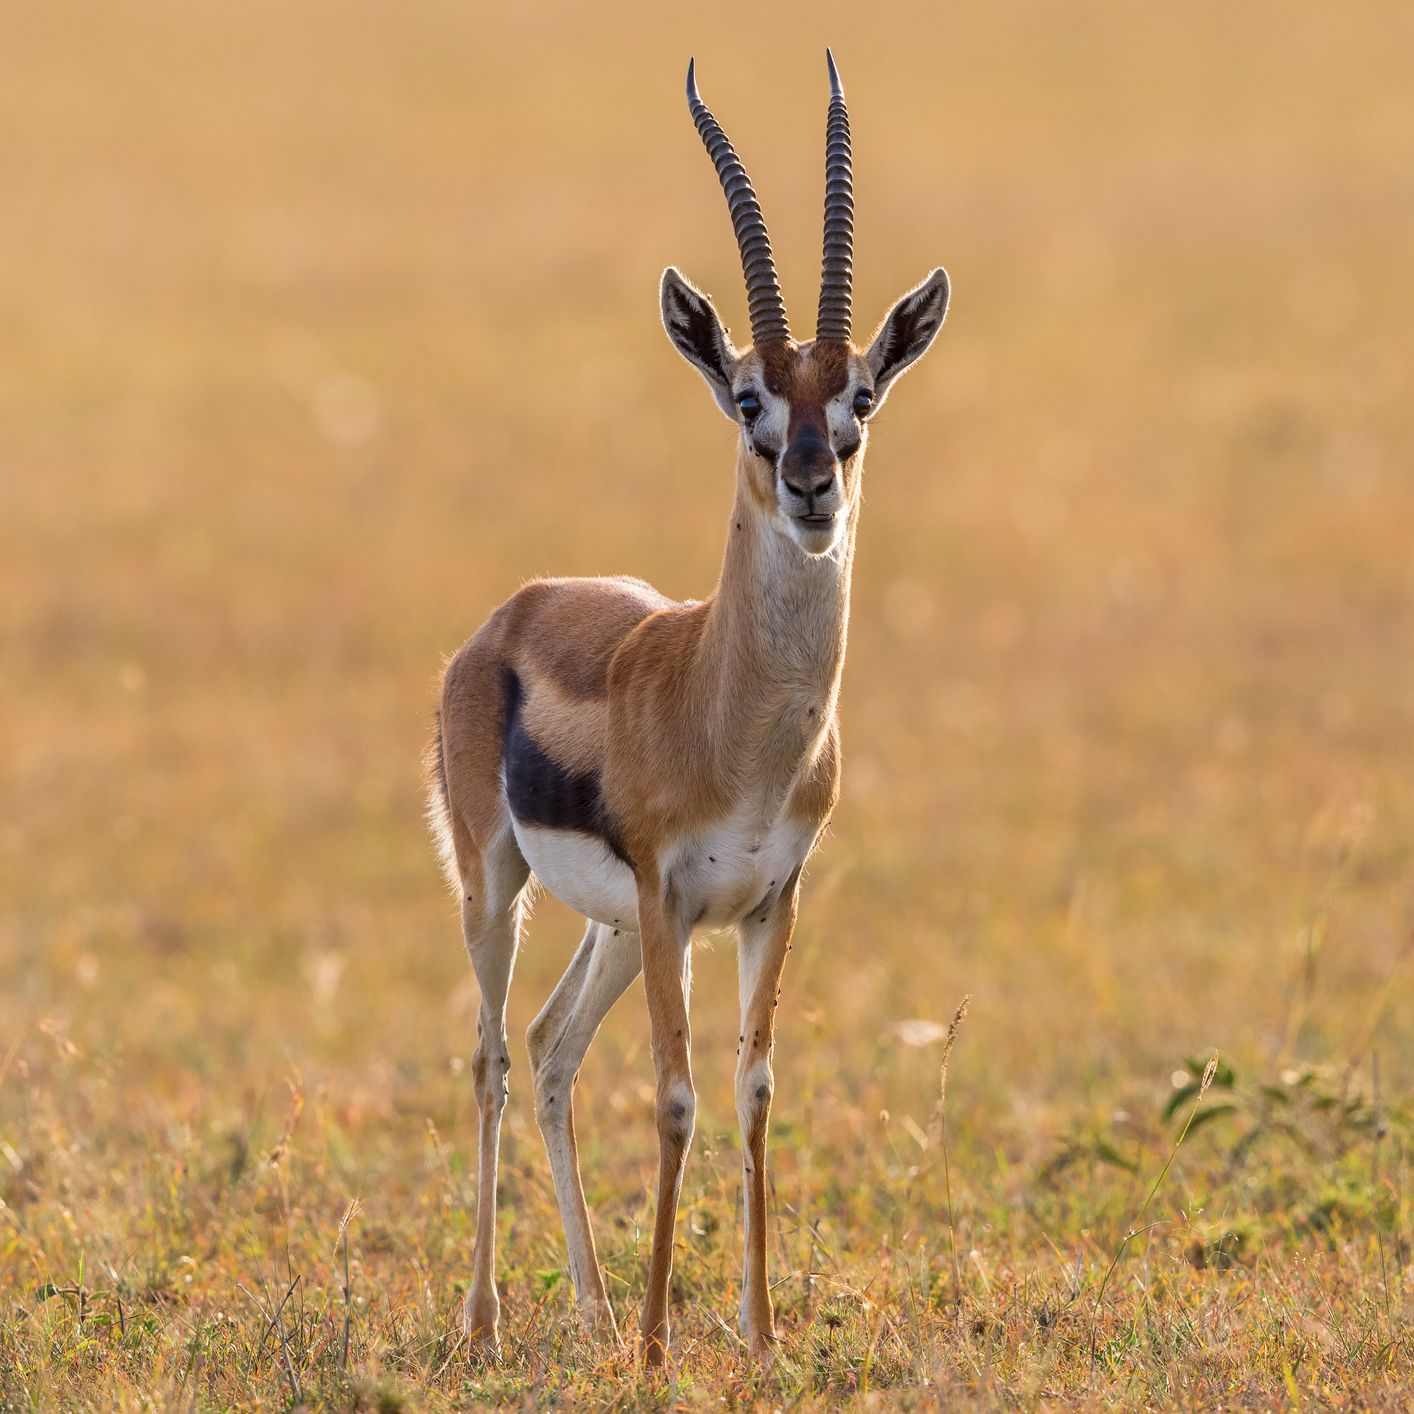 8 Fascinating Facts About Gazelles